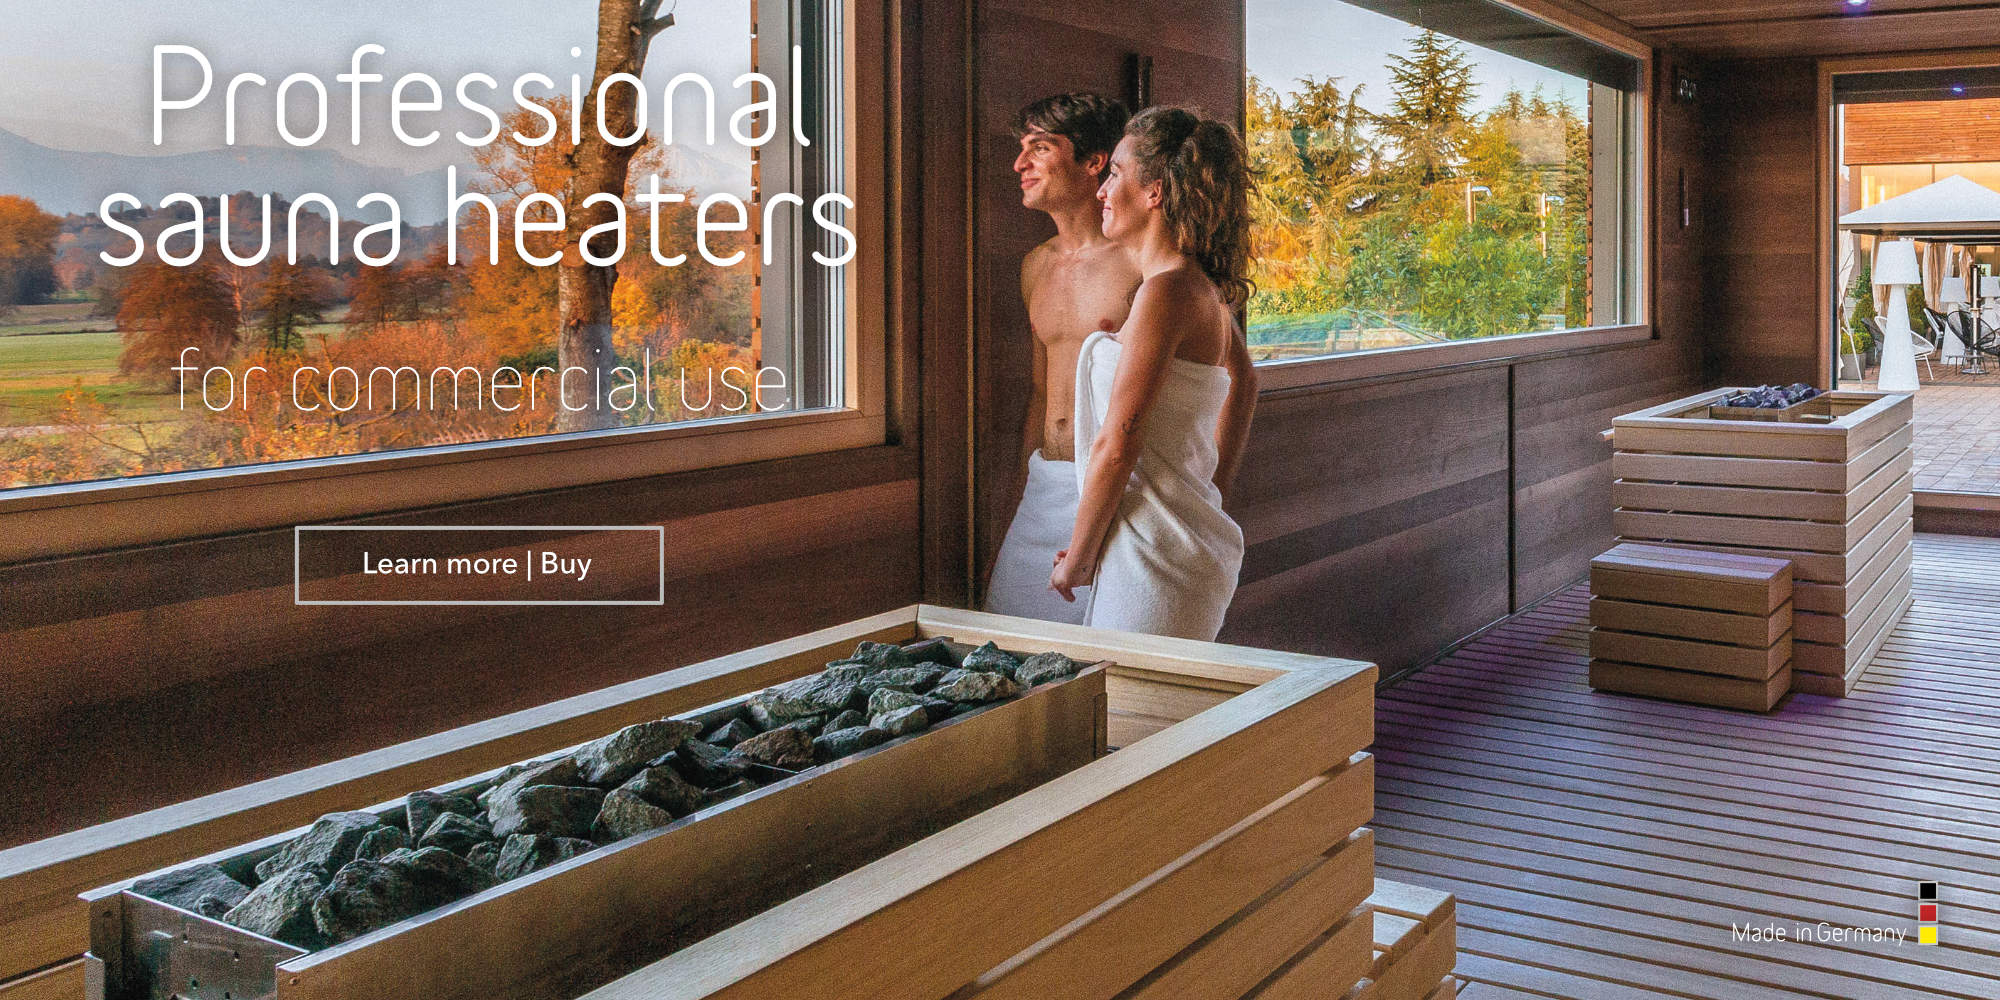 Professional sauna heaters for commercial use